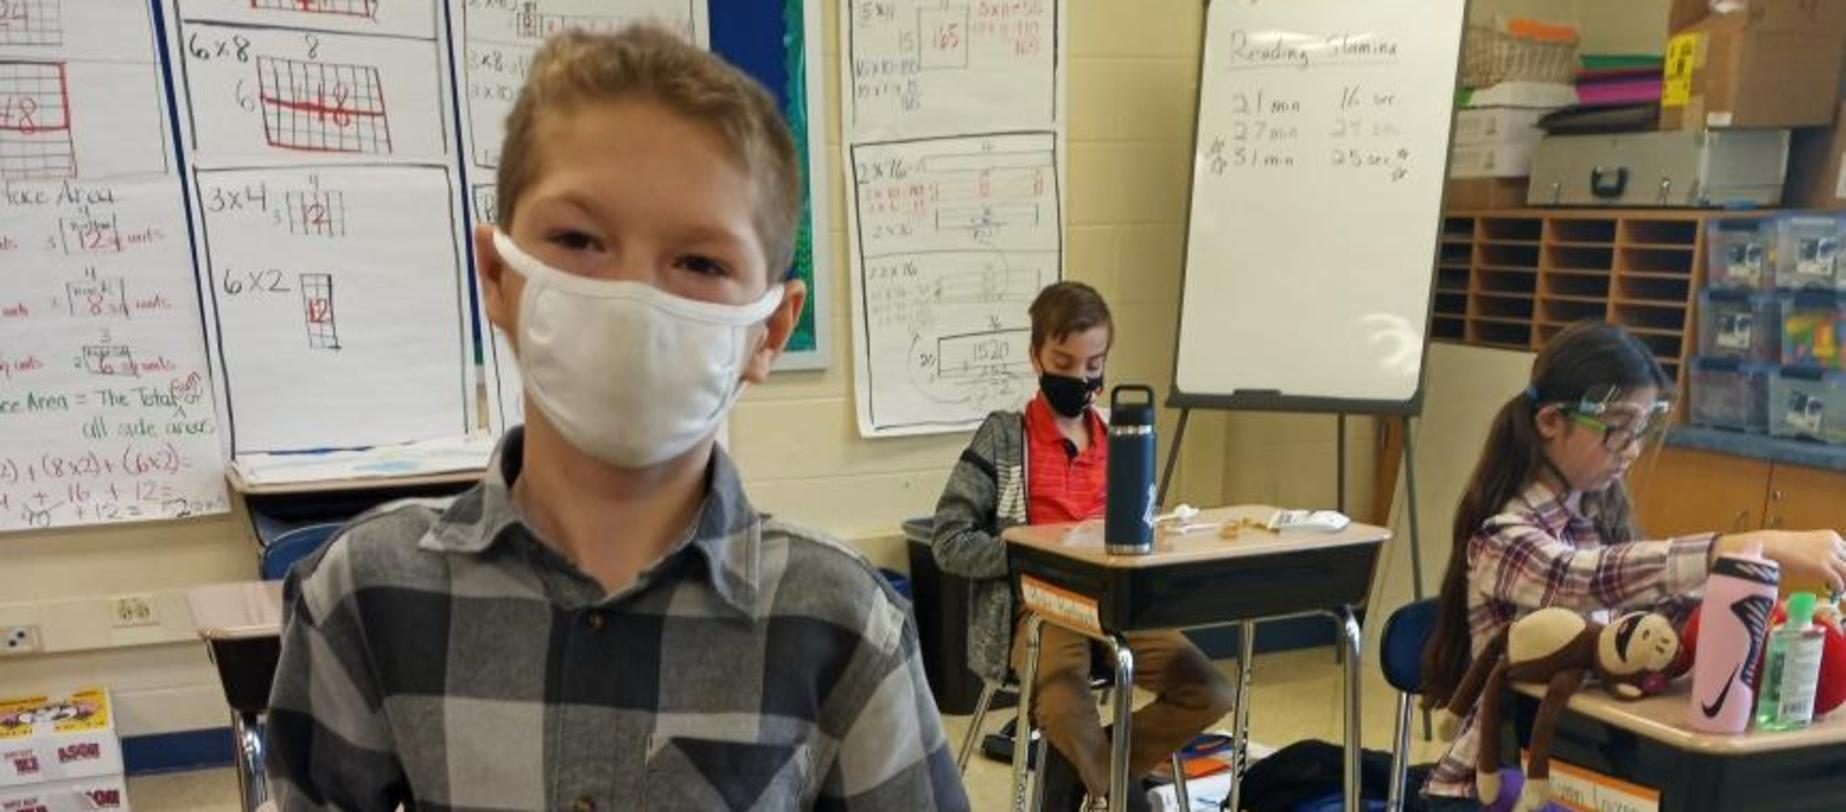 students wearing masks working on projects